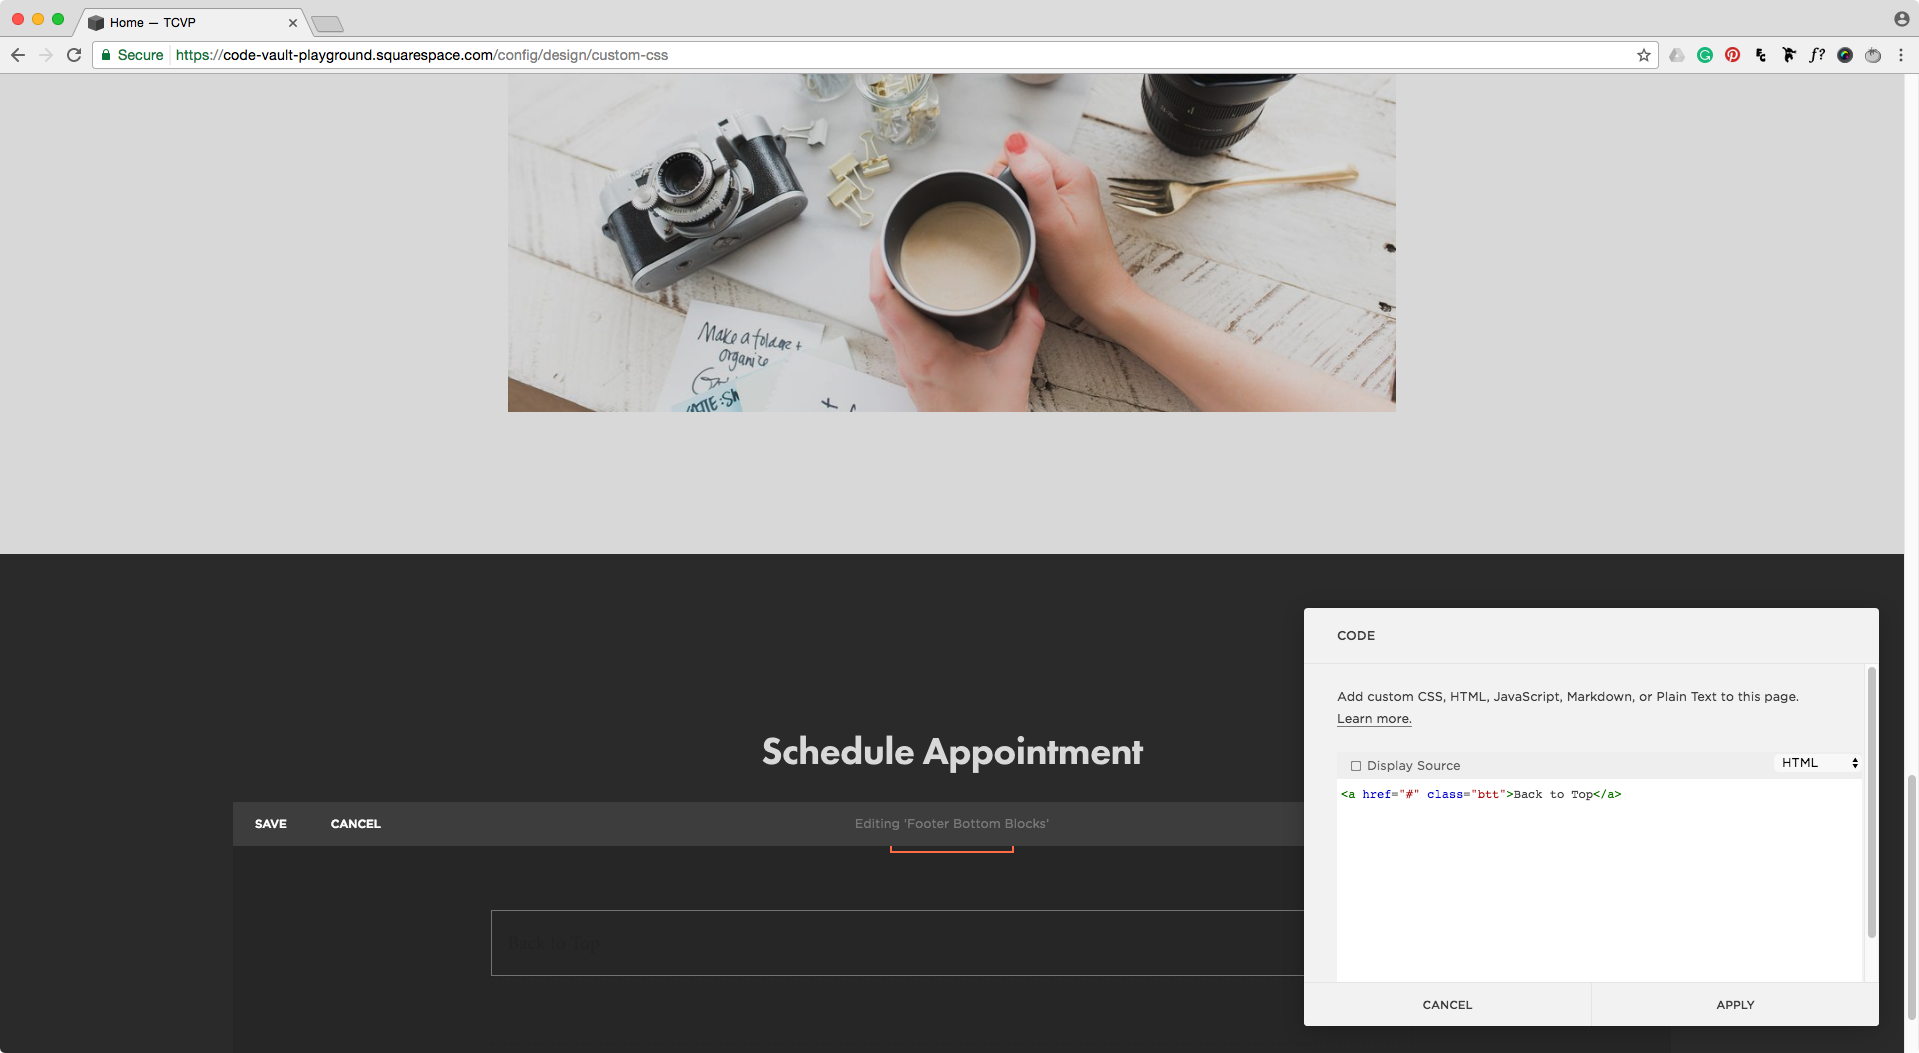 Adding a back to top link to a code block in Squarespace